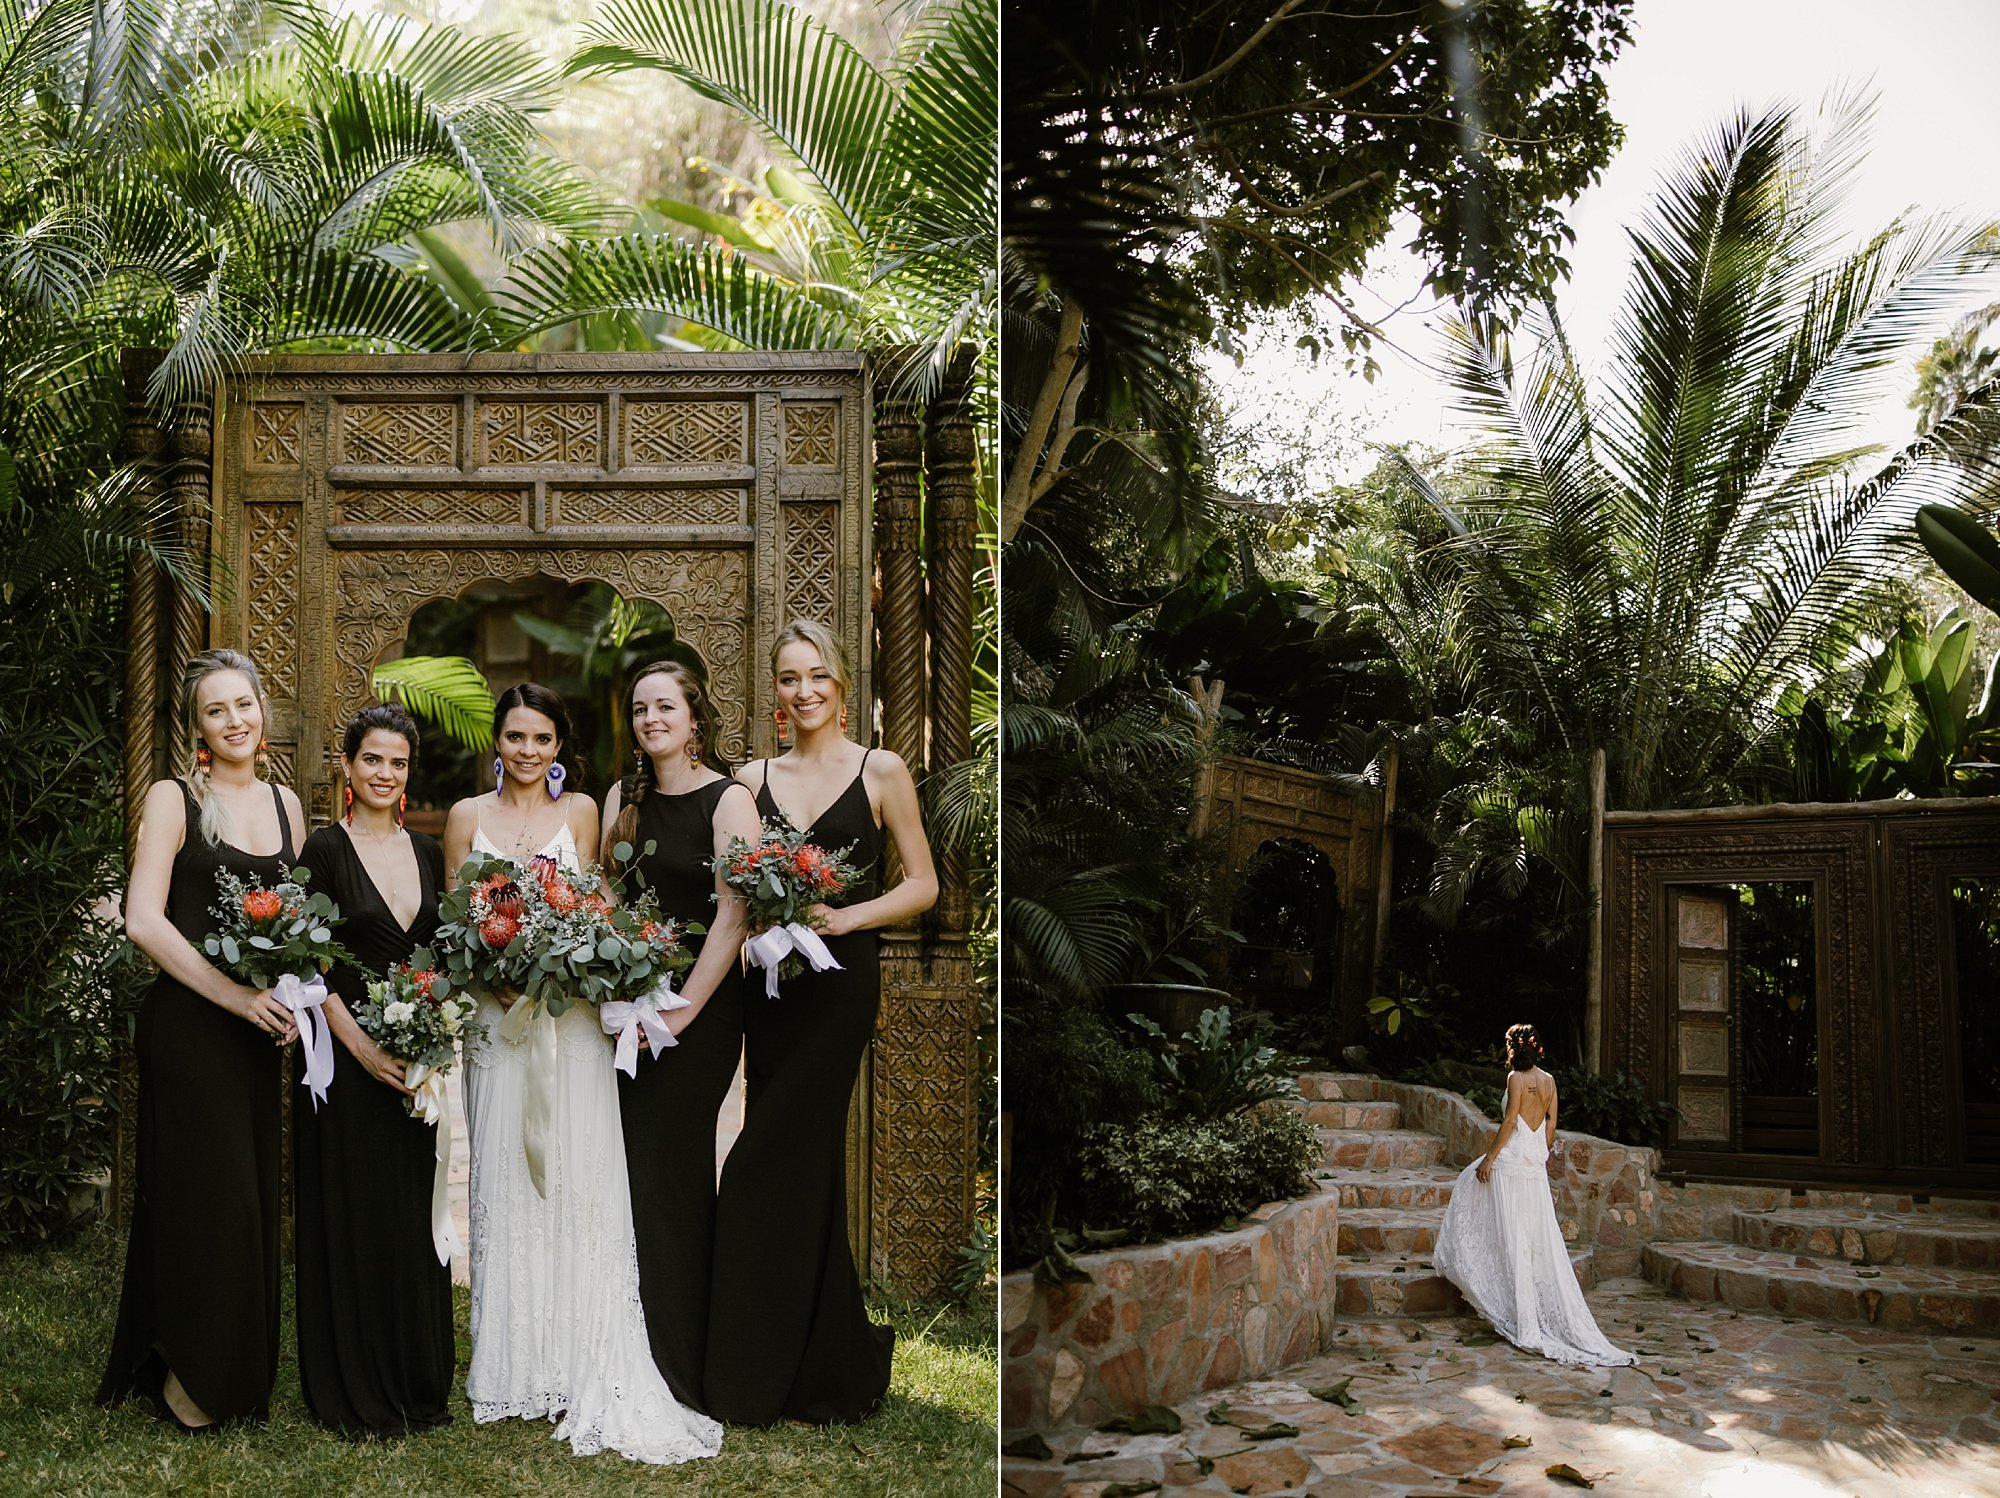 brisa-mar-palapa-sayulita-wedding-photography_0003.jpg